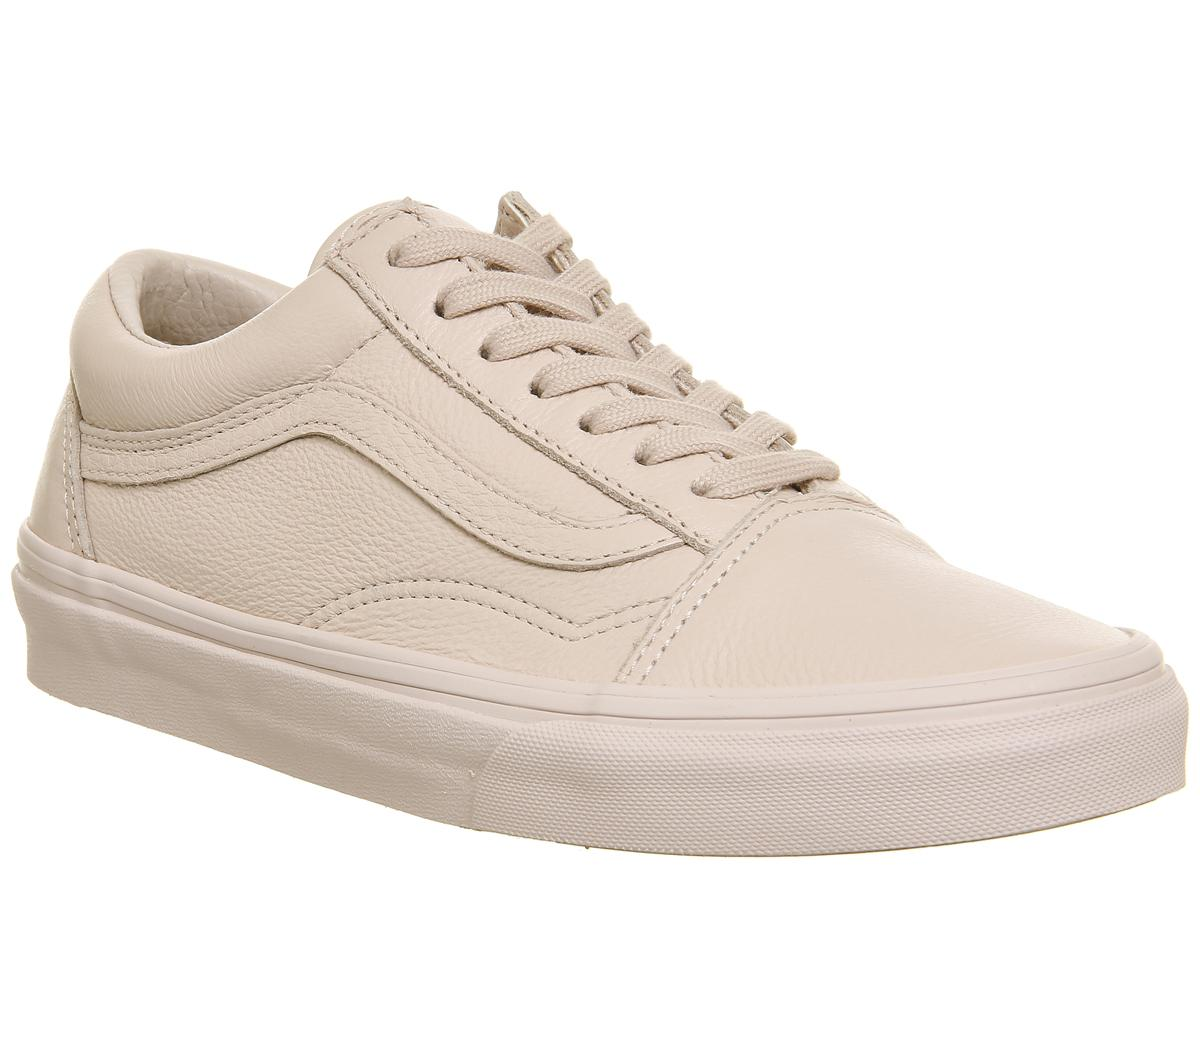 c18a70c4a4f406 Vans Old Skool Trainers Sepia Rose Mono - Hers trainers